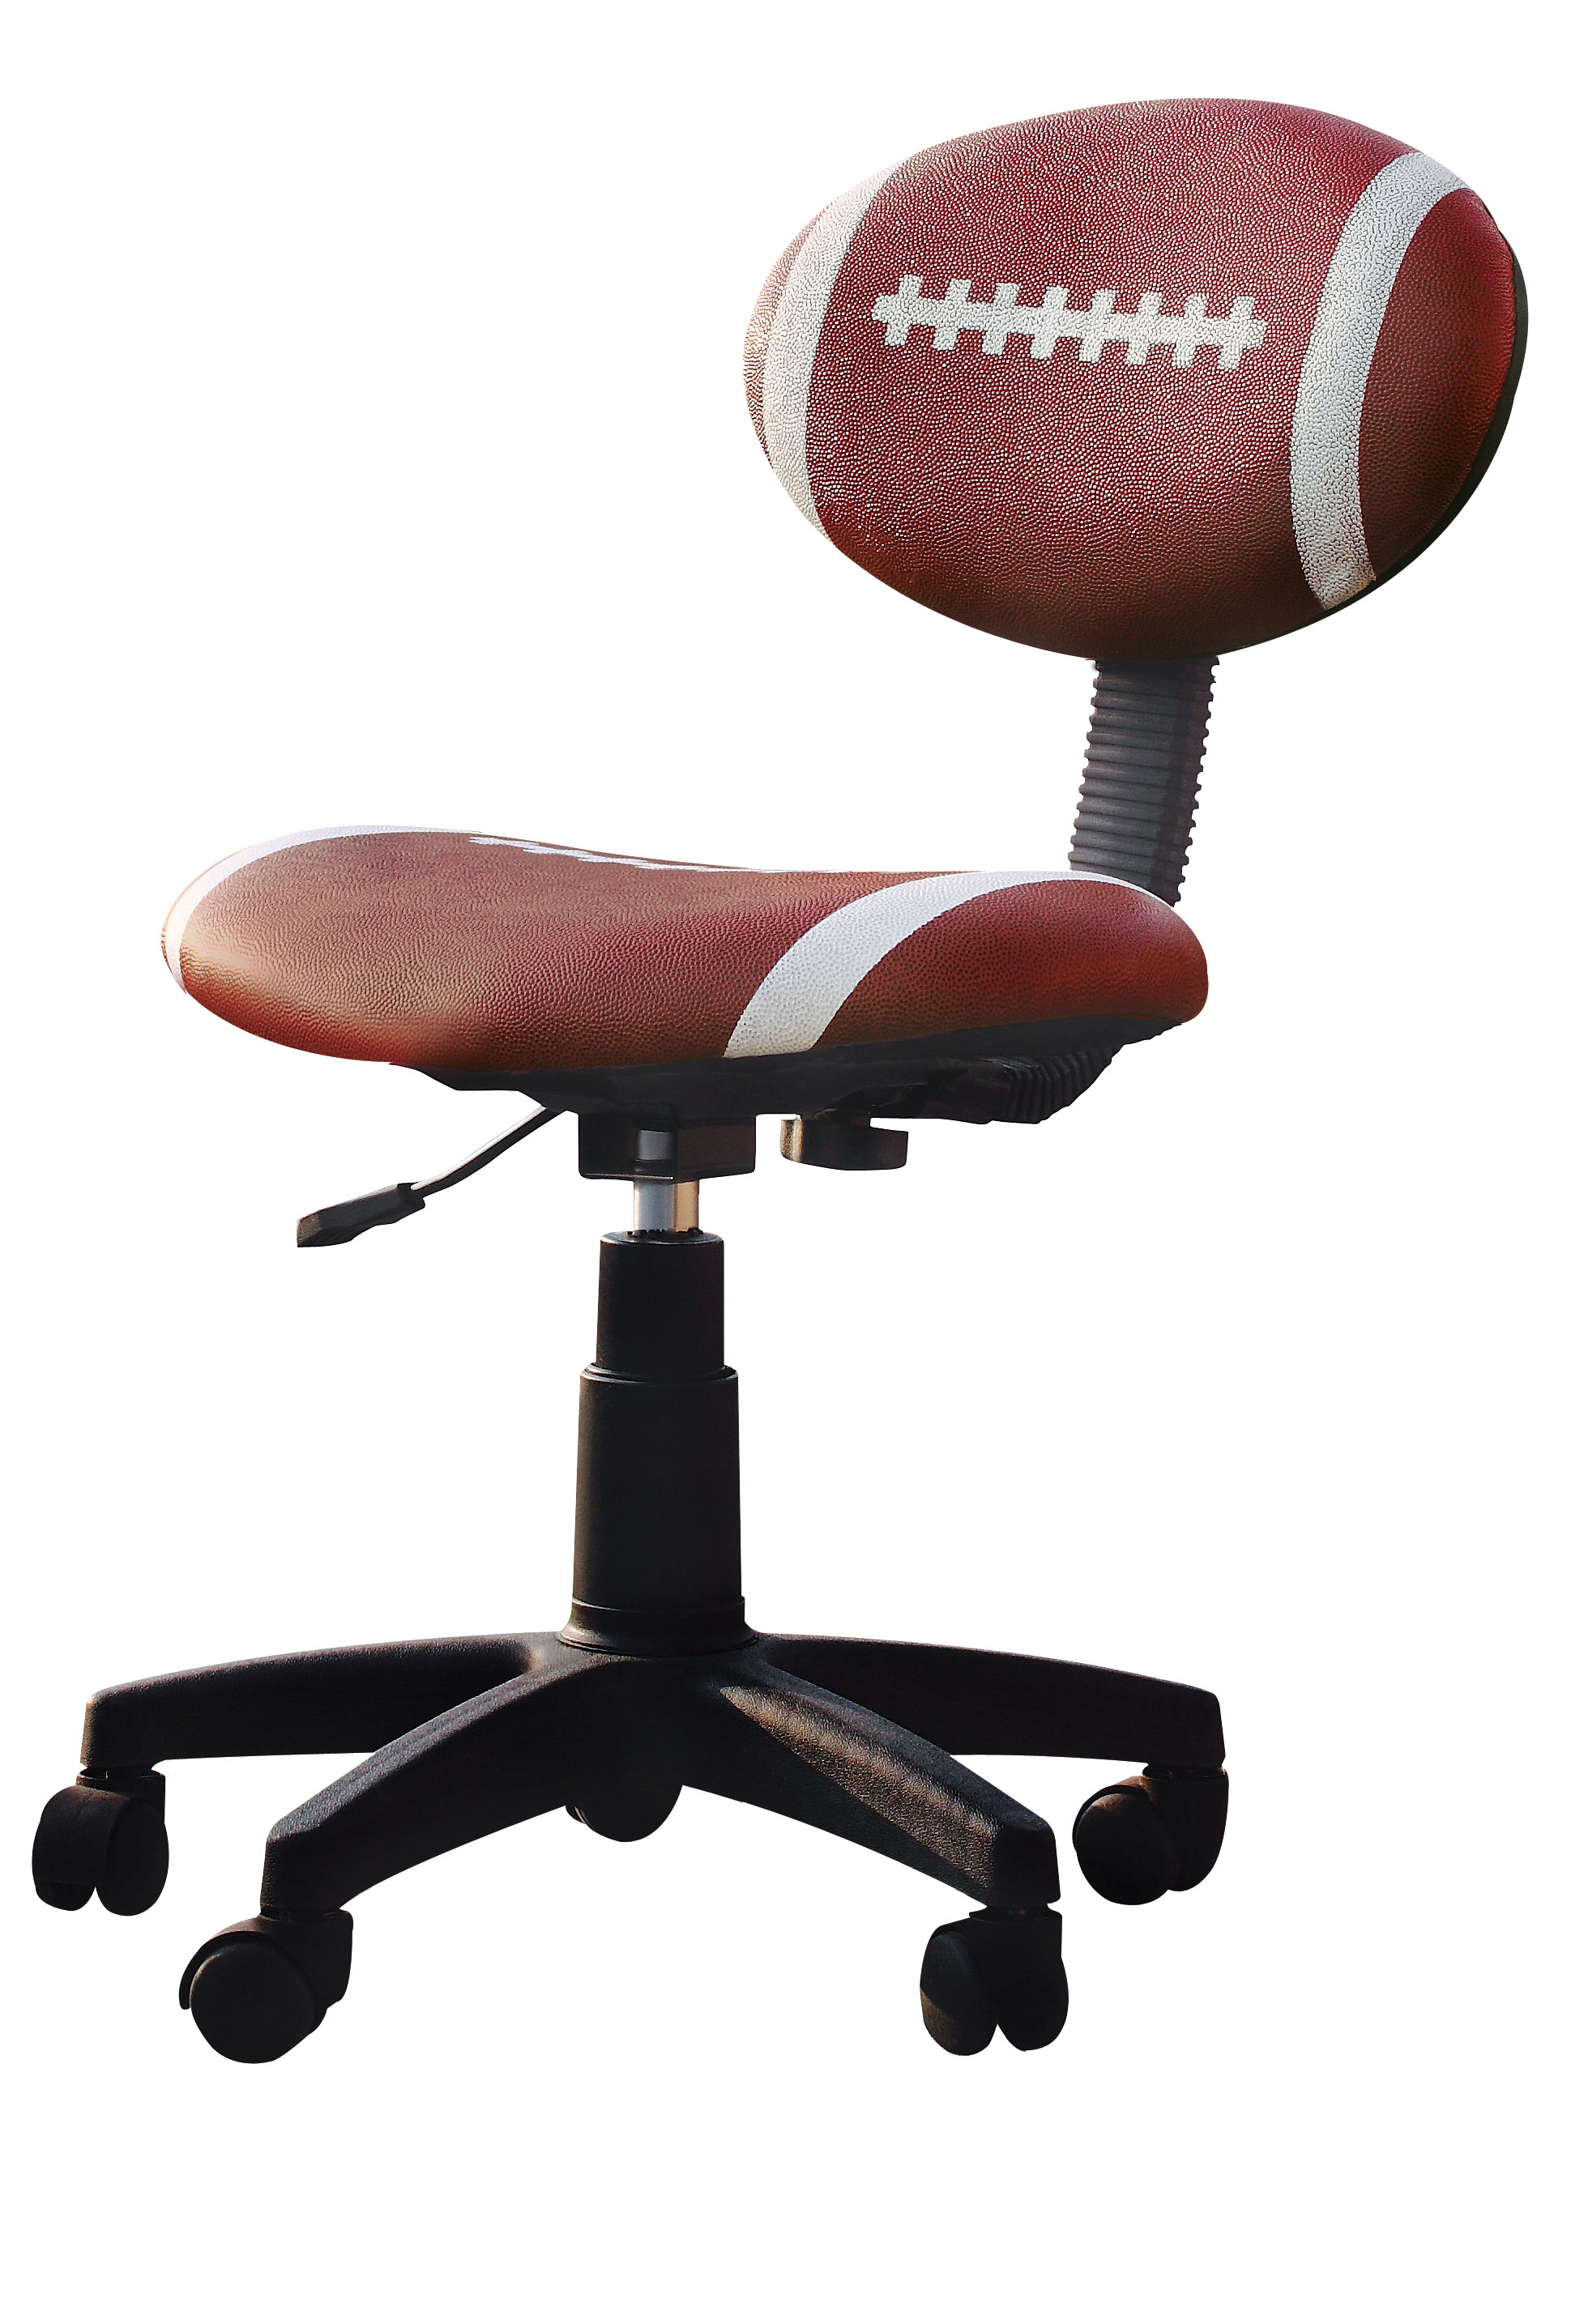 Sports Inspired Comfortable Office Chair,brown